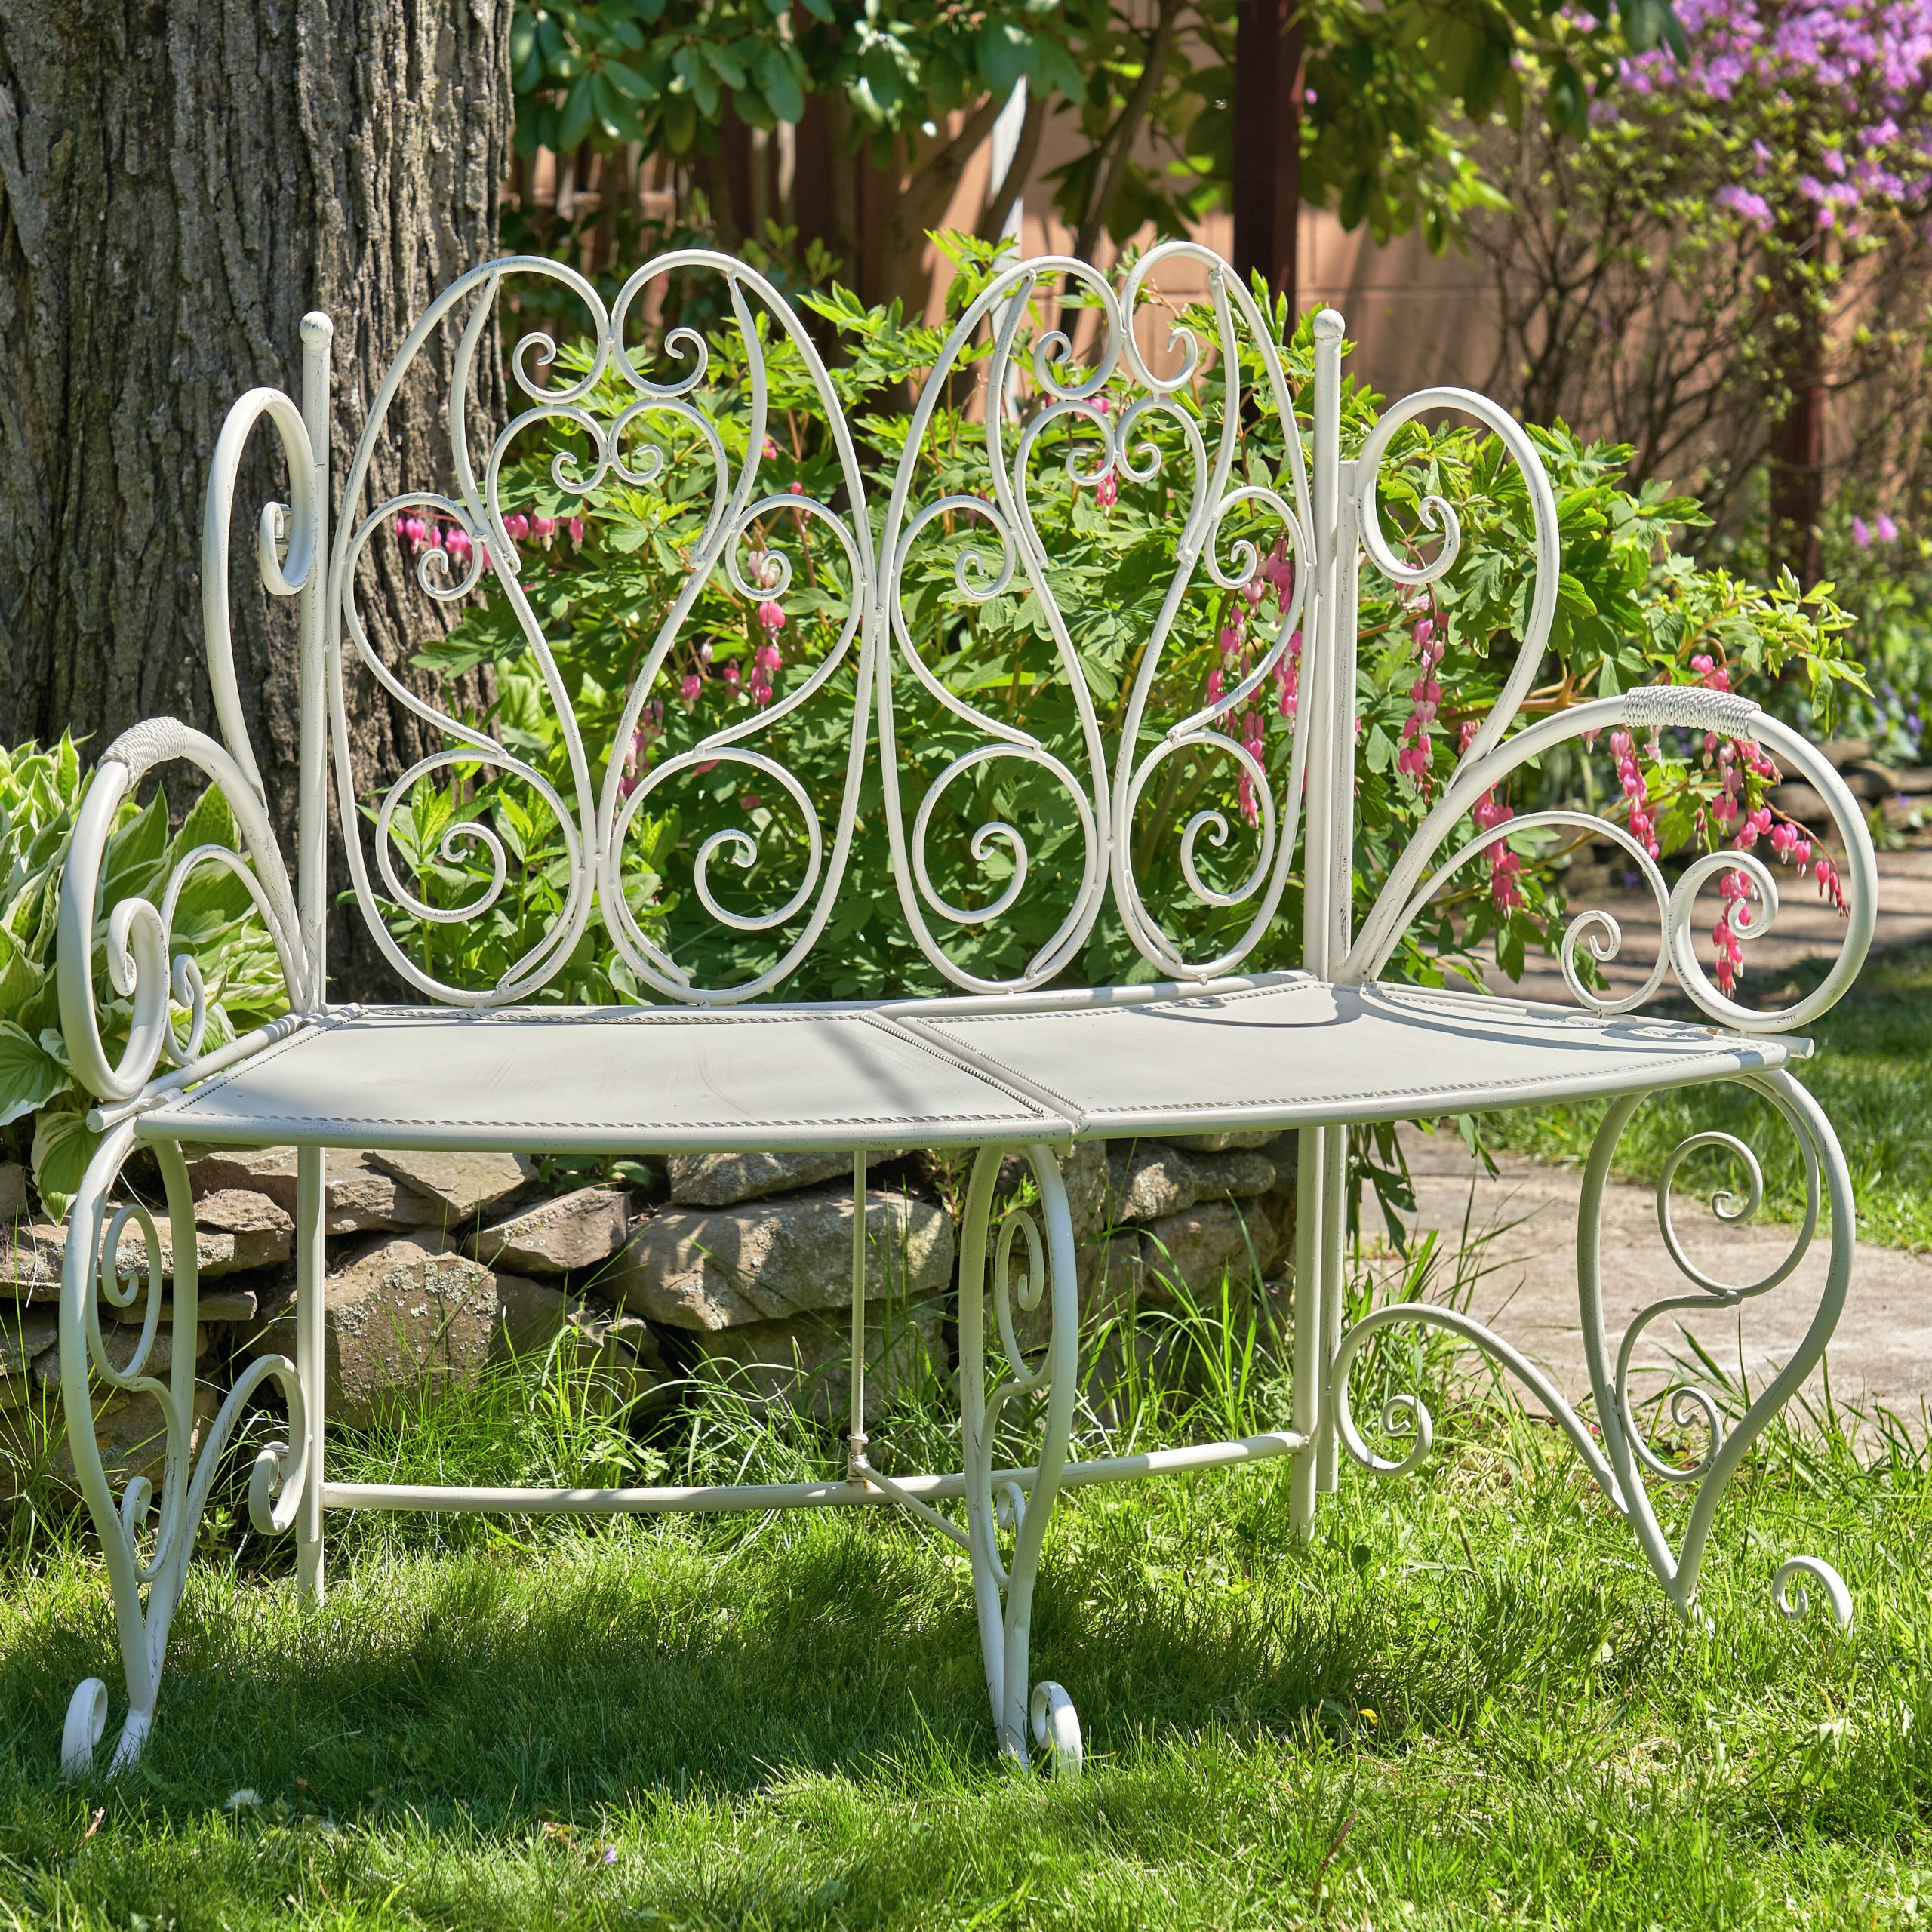 Abdullah Galina Folding Curved Iron Garden Bench Pertaining To Recent Norrie Metal Garden Benches (View 10 of 30)